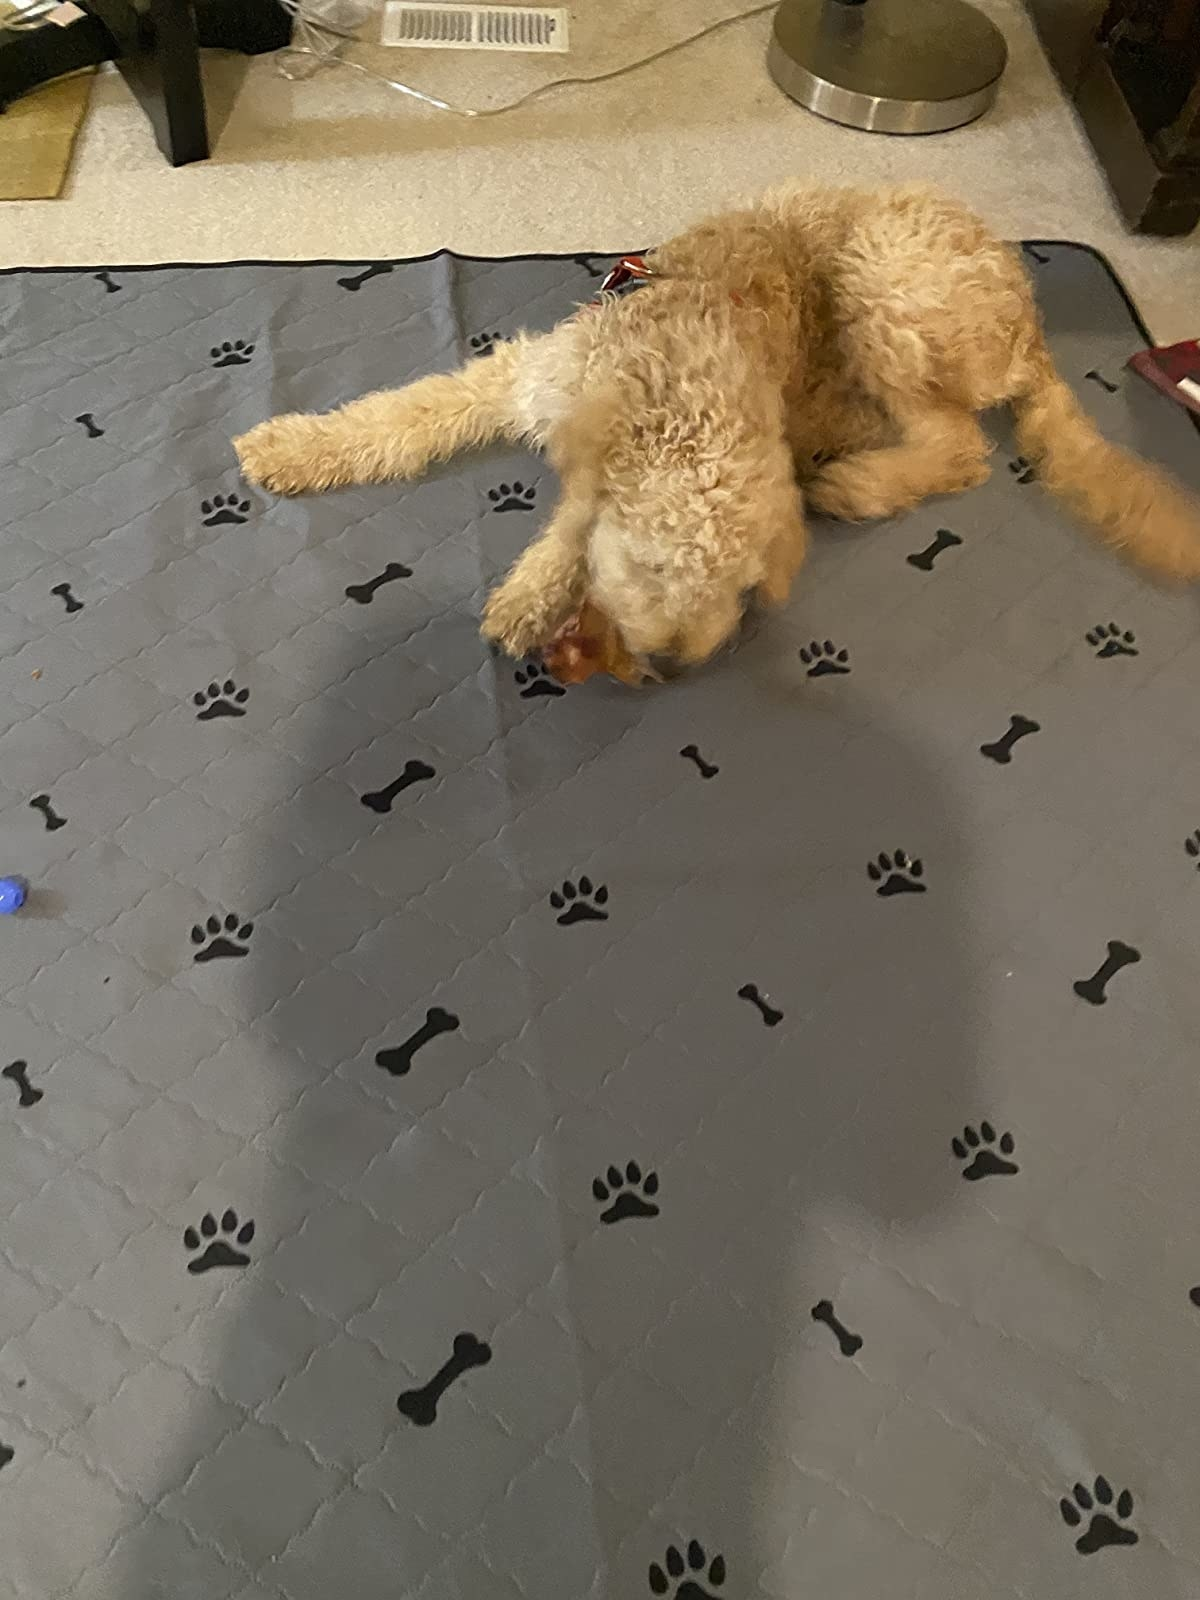 a dog on the gray quilted mat with paws and bones printed on it